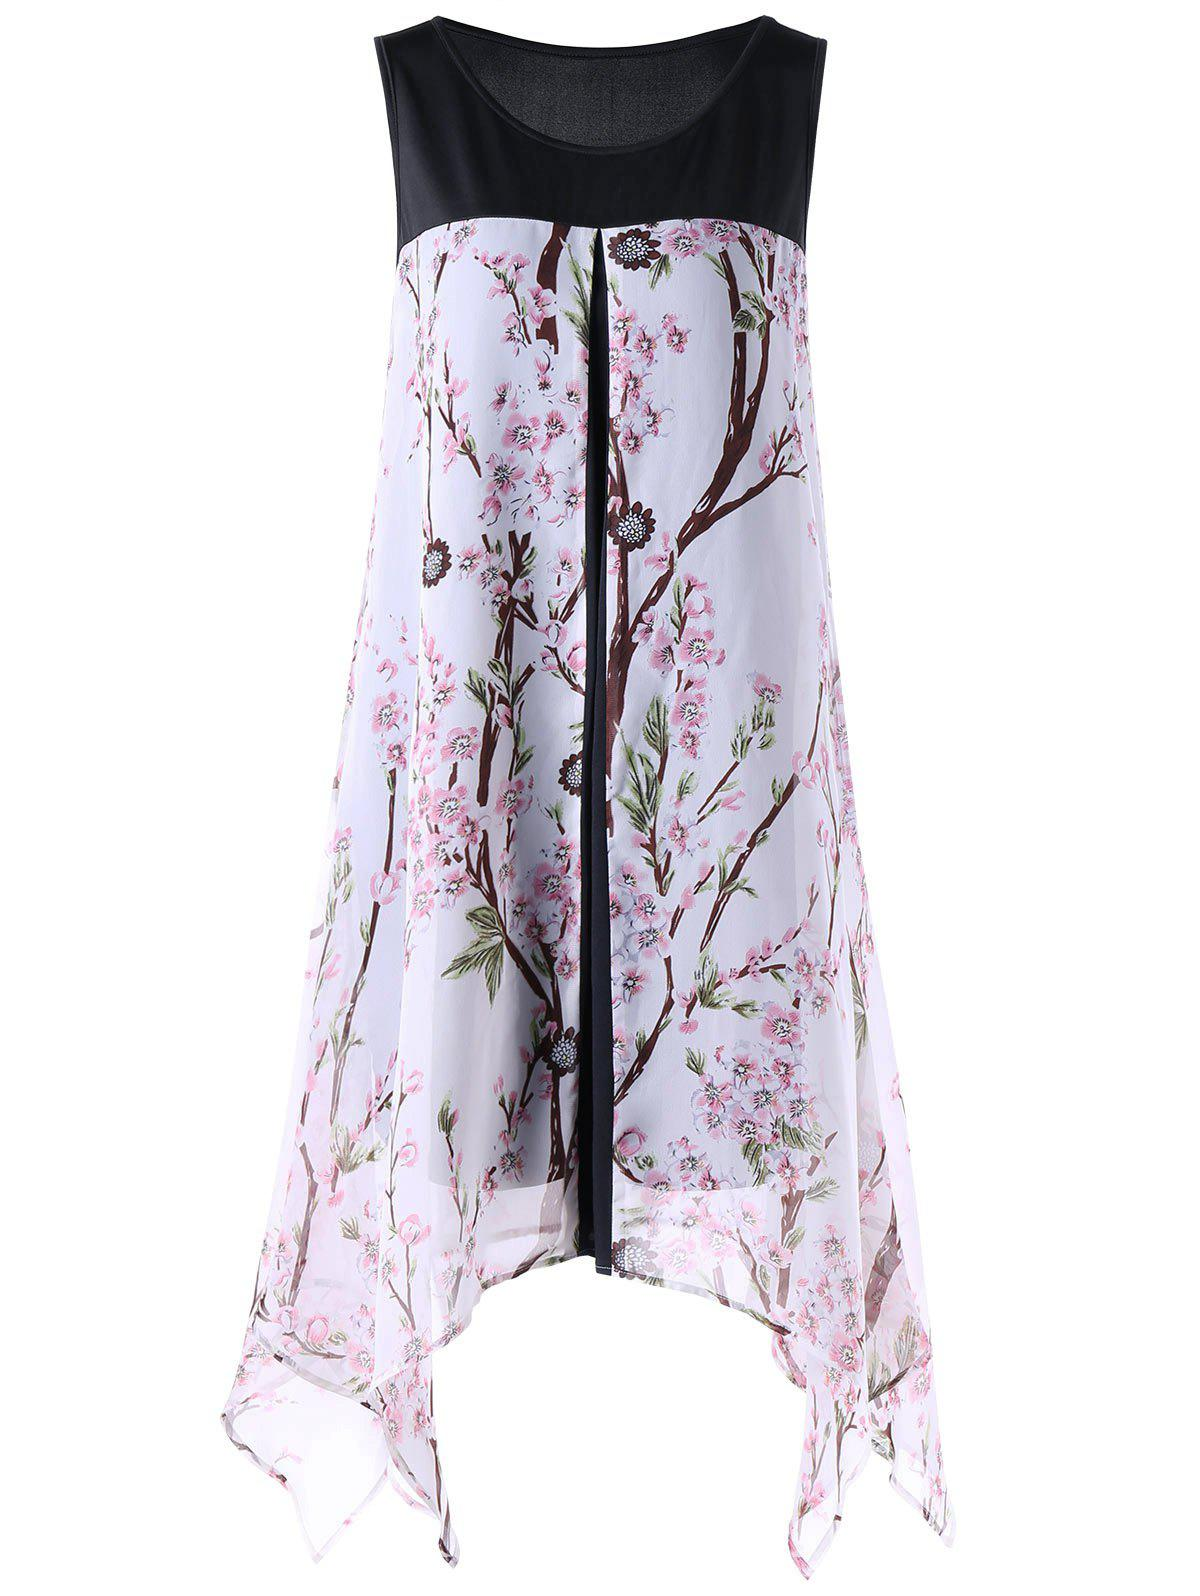 Tiny Floral Sleeveless Plus Size Handkerchief DressWOMEN<br><br>Size: 5XL; Color: WHITE; Style: Brief; Material: Polyester; Silhouette: Straight; Dresses Length: Knee-Length; Neckline: Round Collar; Sleeve Length: Sleeveless; Pattern Type: Floral; With Belt: No; Season: Summer; Weight: 0.3500kg; Package Contents: 1 x Dress;